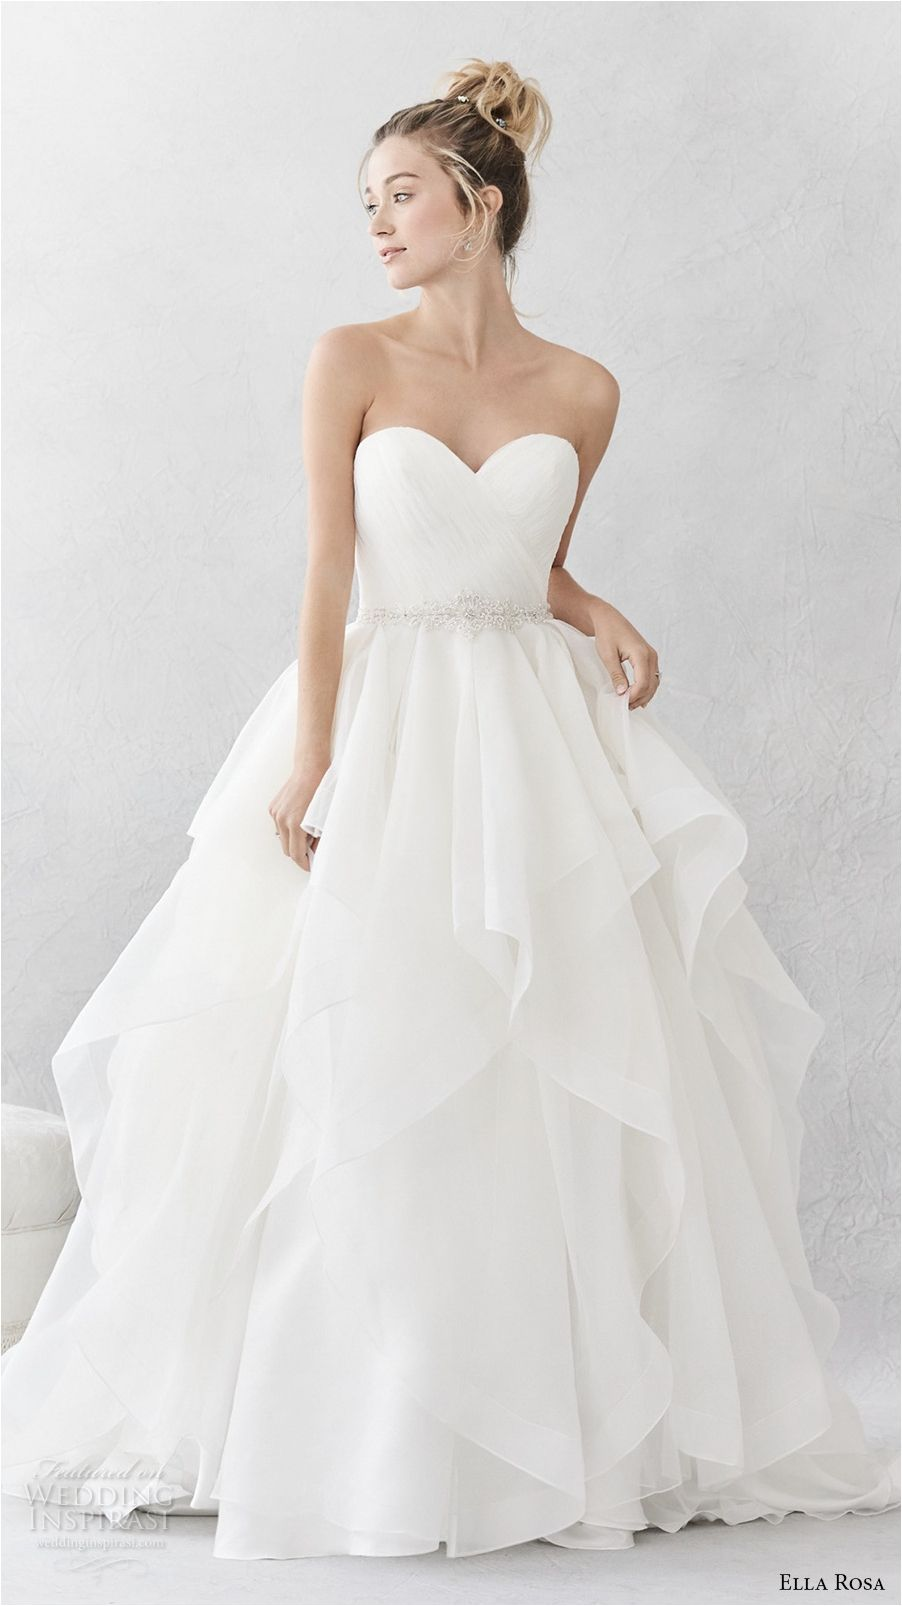 Little white wedding dress   Elegant Aline Sweetheart Wedding Dresses Ideas